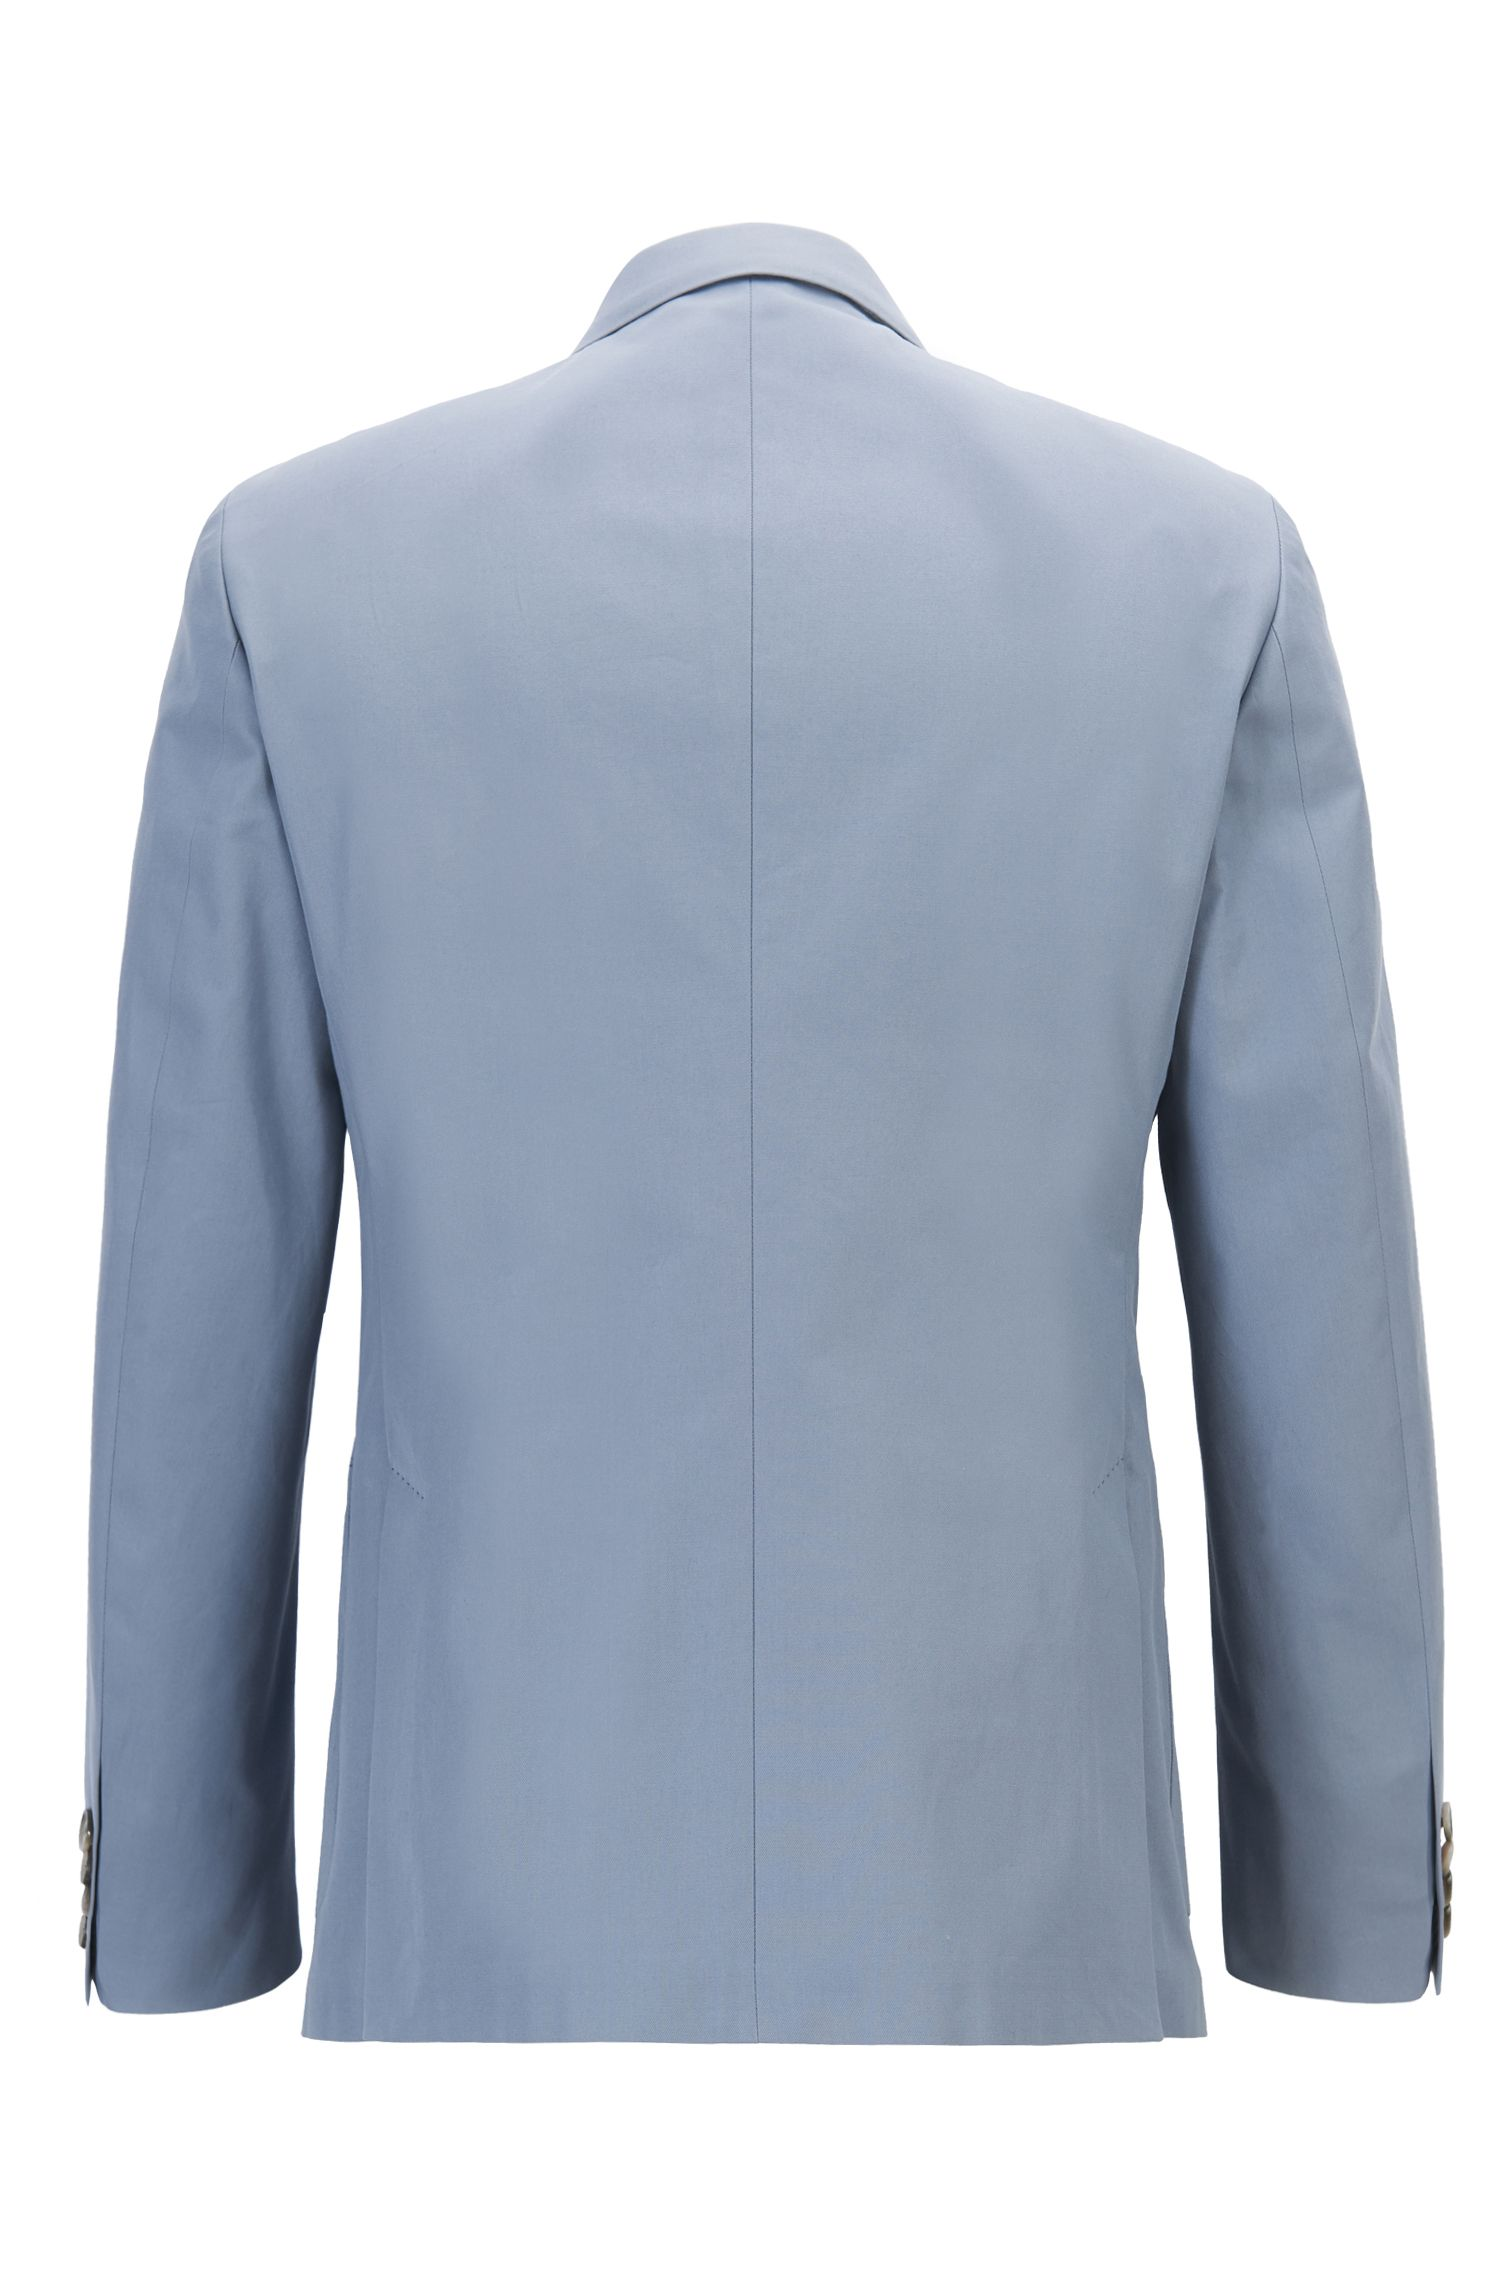 Slim-fit double-breasted jacket in pure cotton